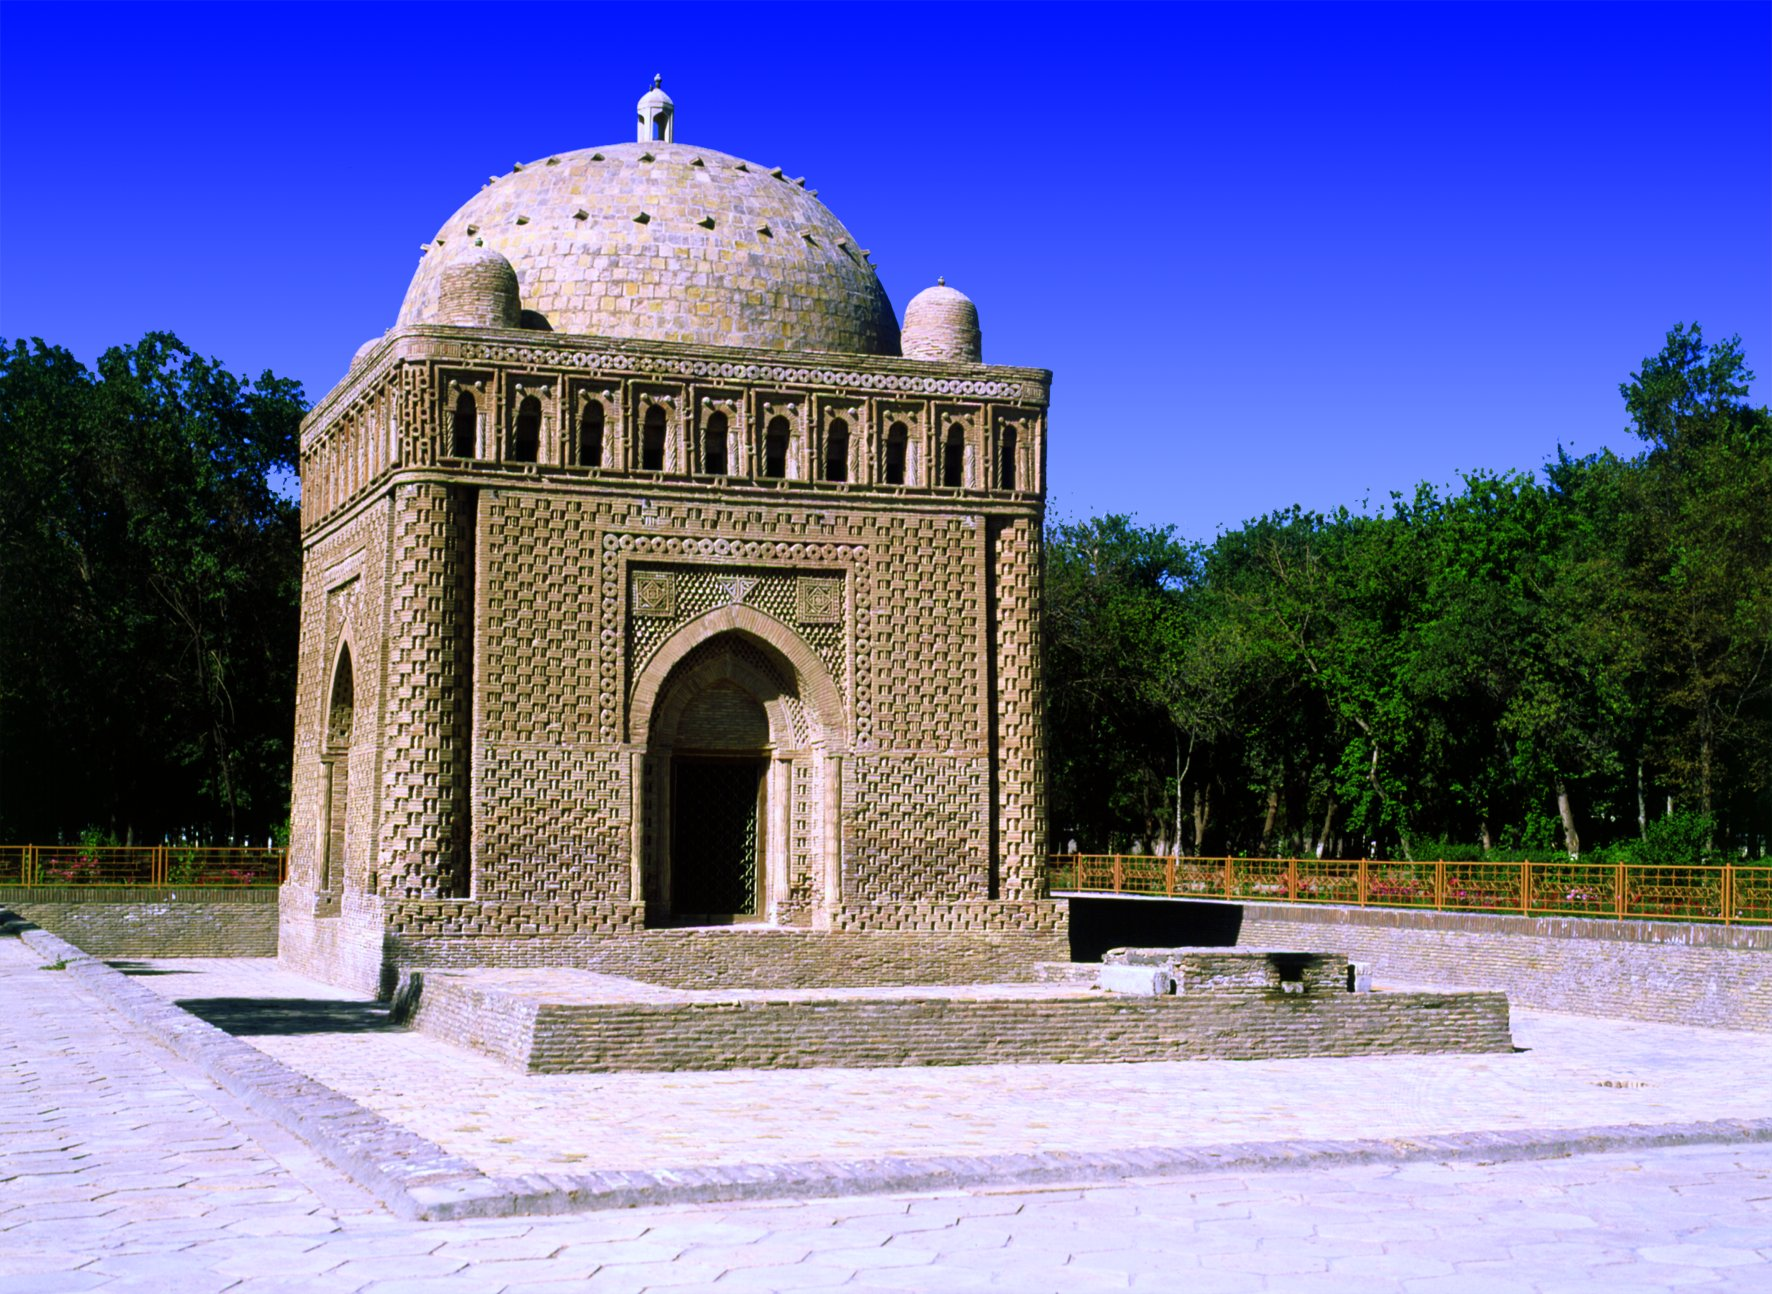 Mausoleum of Ismail Samani